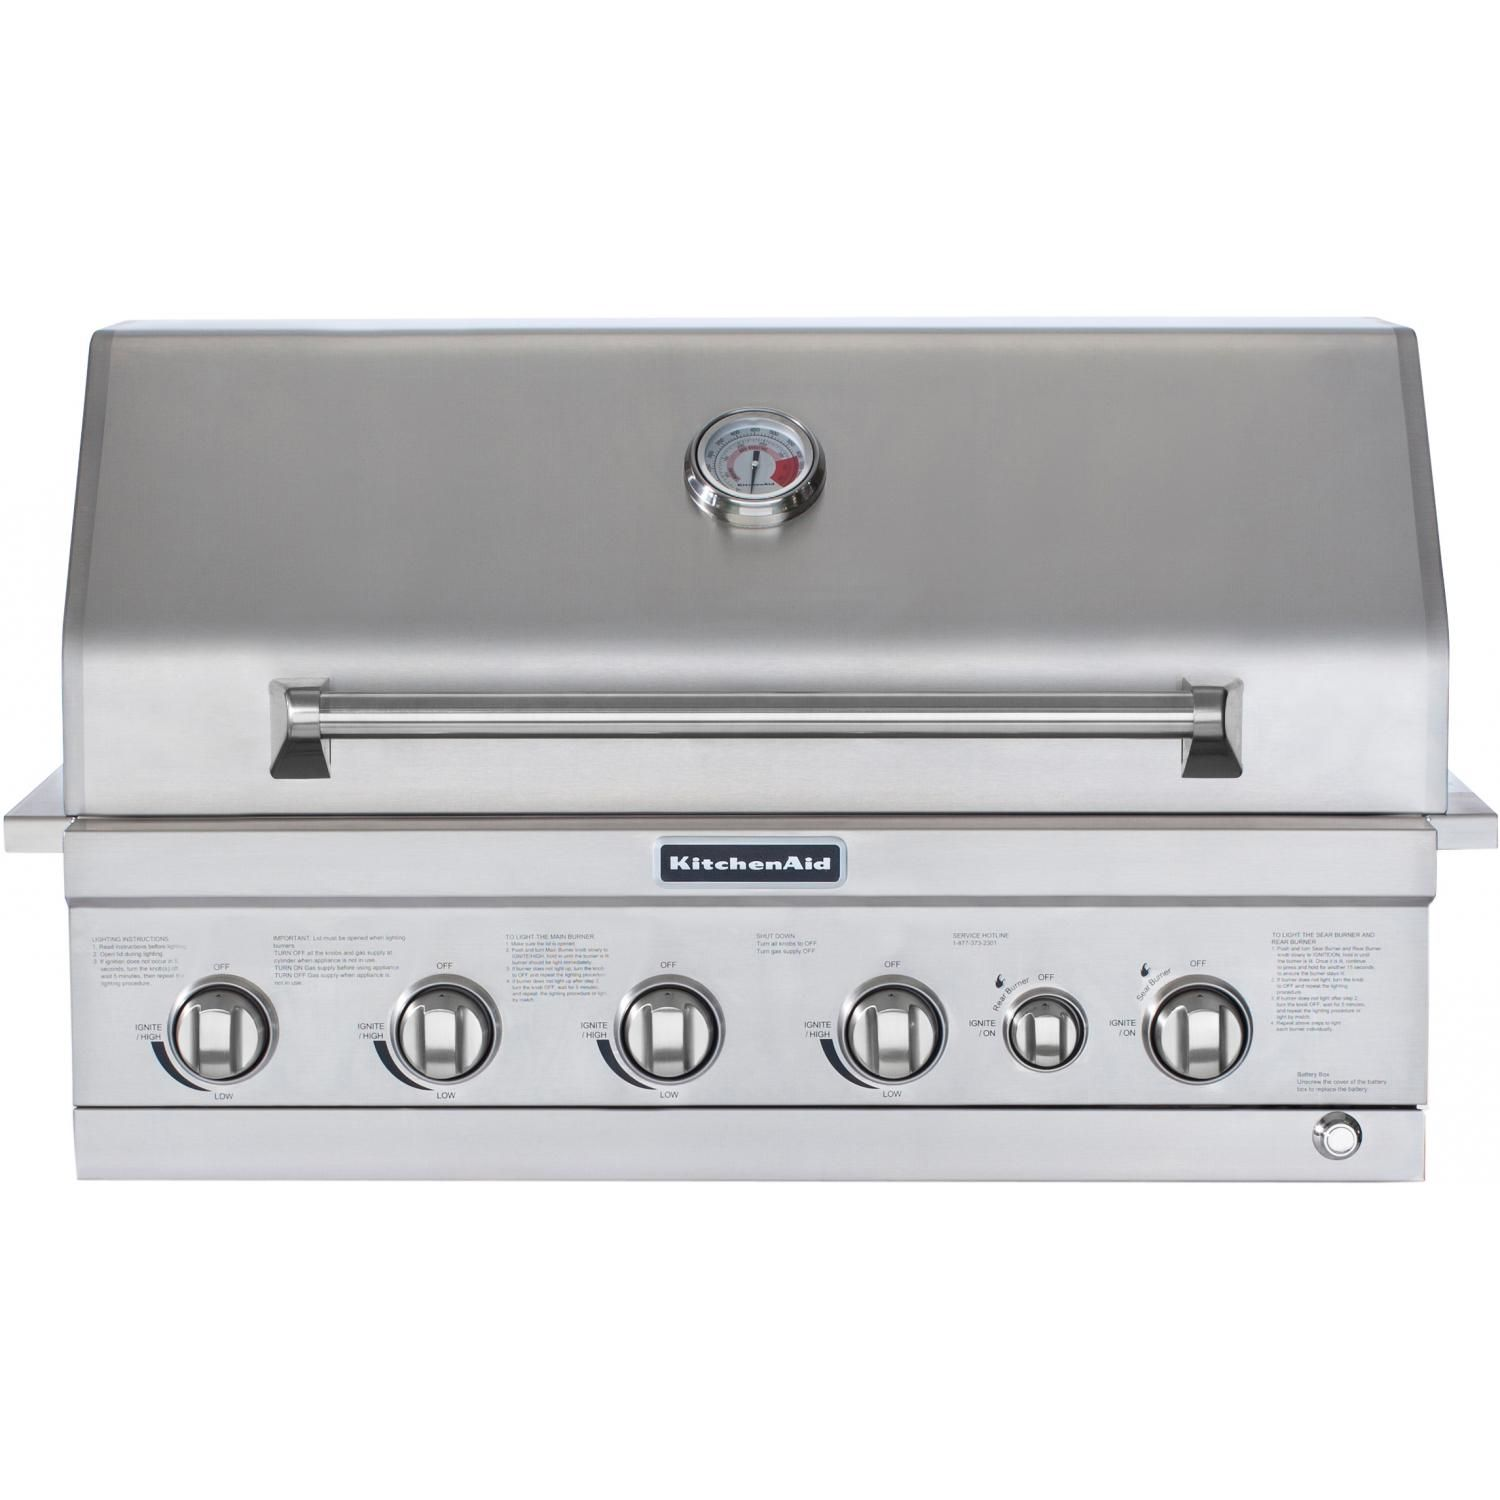 Kitchenaid 4 Burner Natural Gas Built In Grill With Searing And Rear Ships As Propane Ings